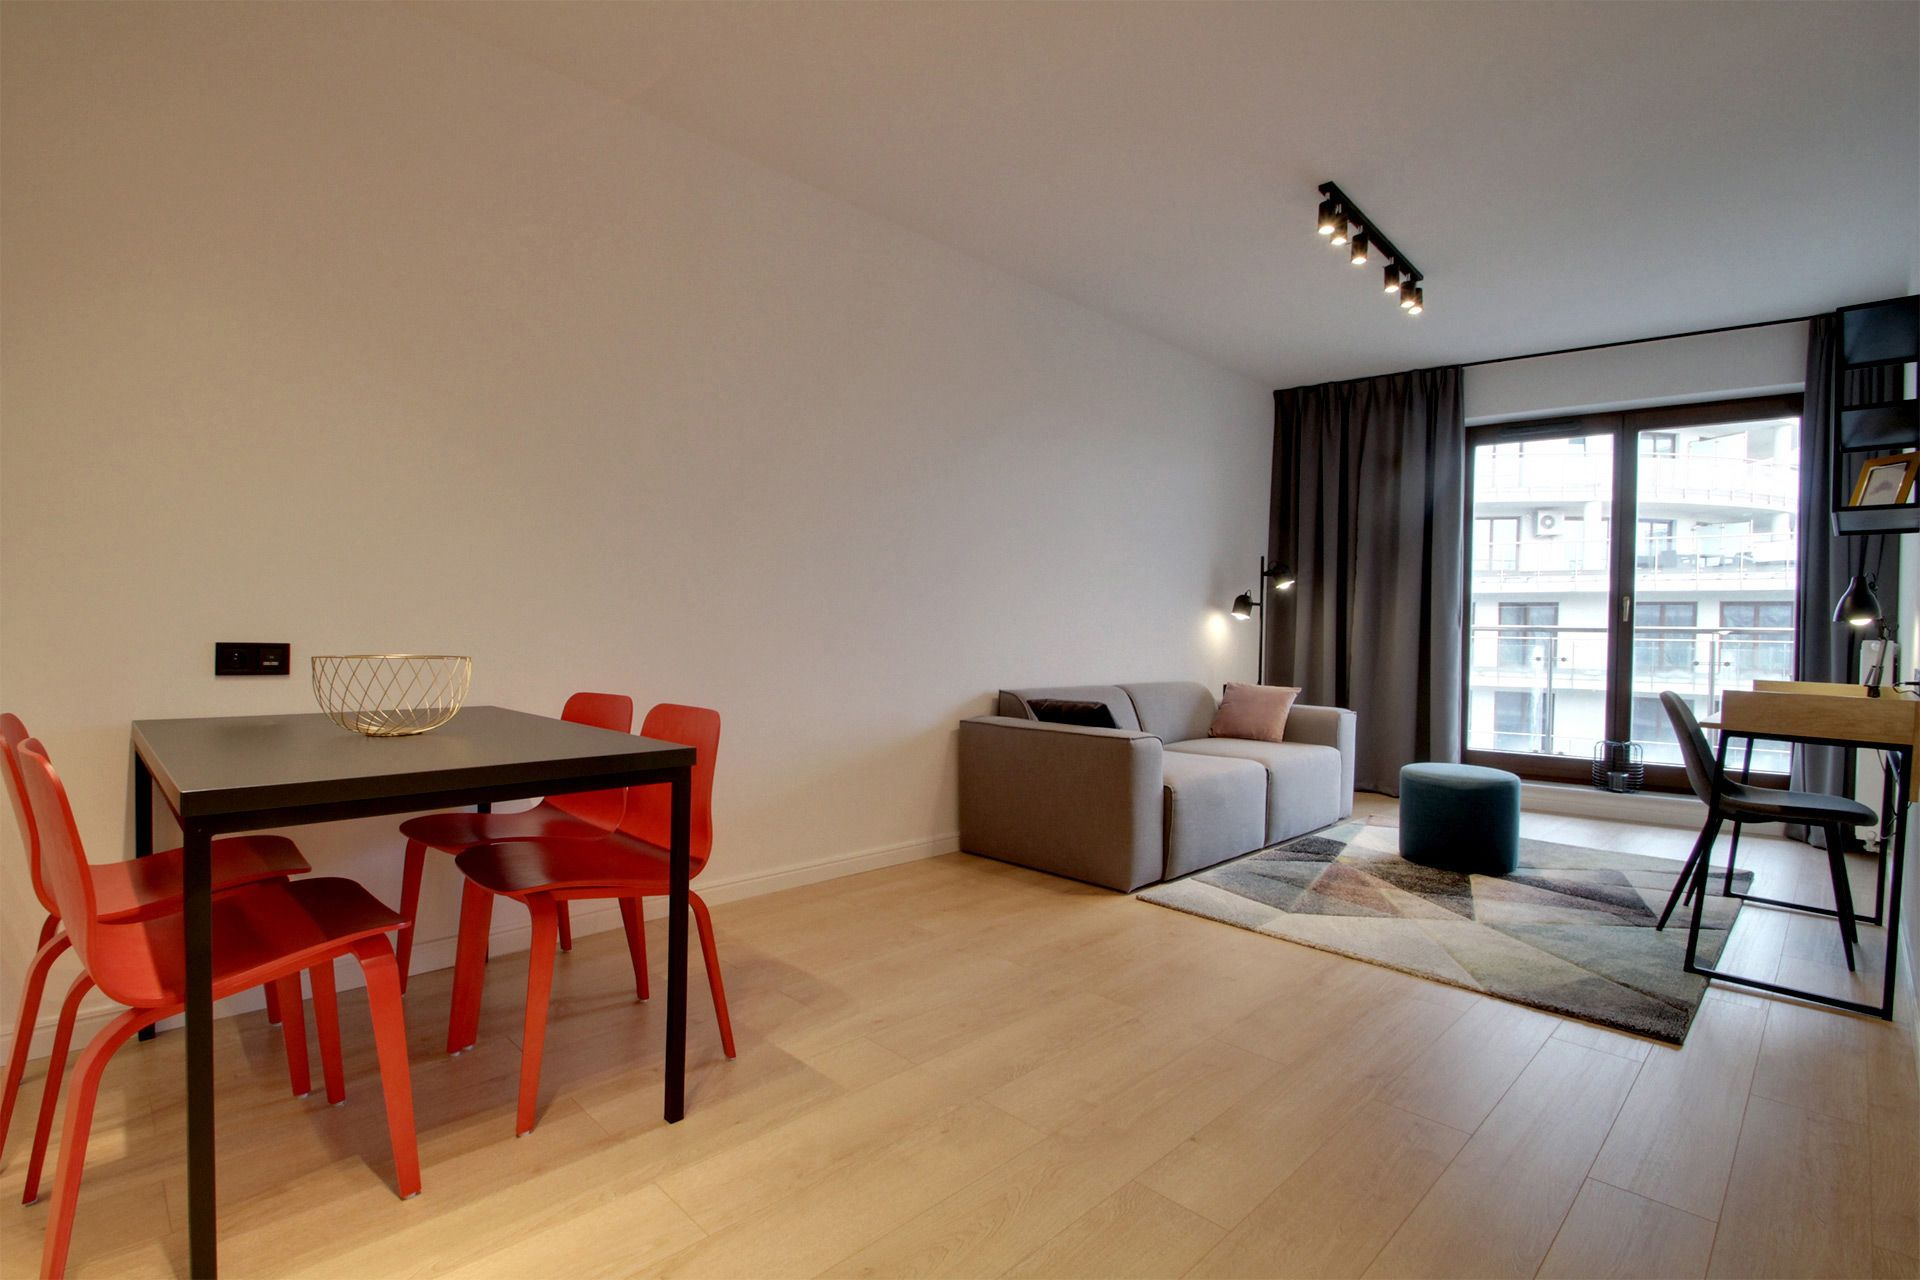 2 Bedroom - Large apartment to rent in Warsaw UPR-A-029-2